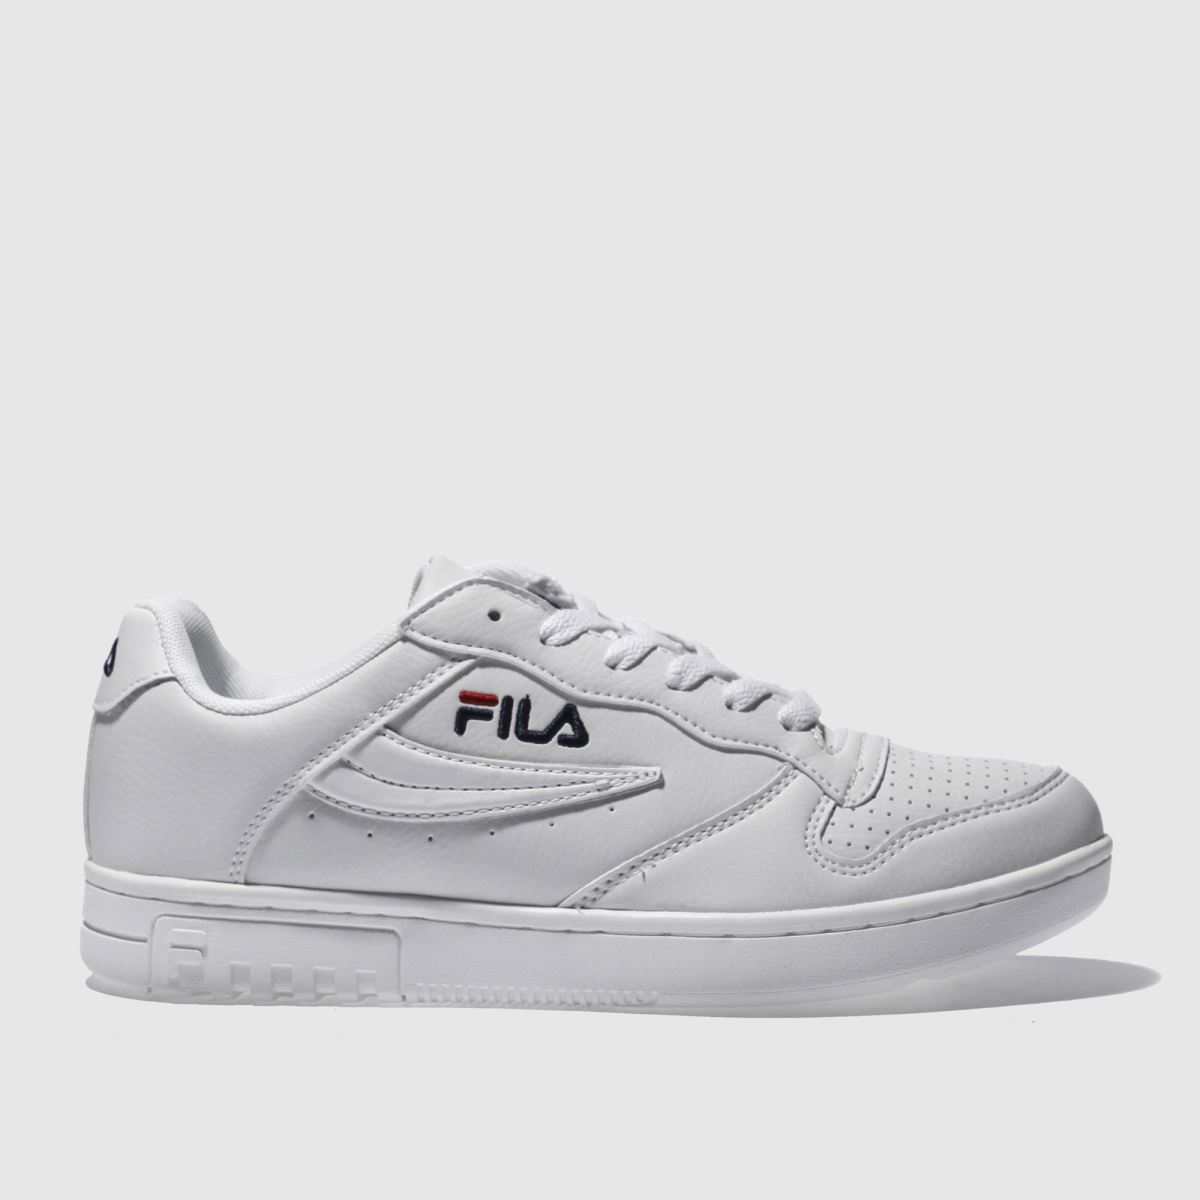 81d79179ebb9 Fila White Fx100 Low Trainers - £39.99 - Bullring   Grand Central